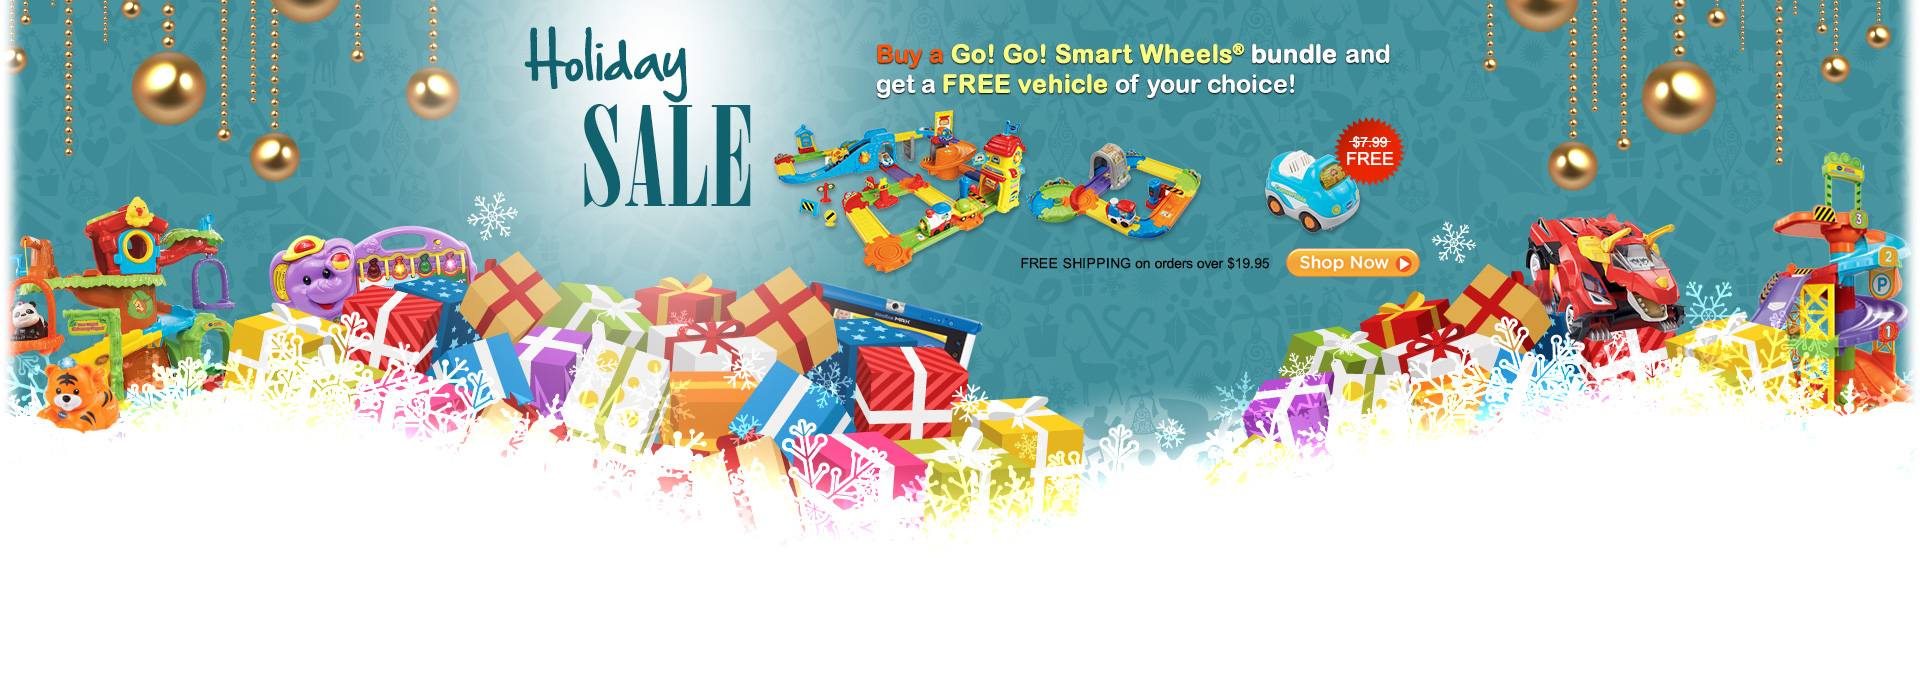 Thanksgiving SALE - Buy a Go! Go! Smart Wheels bundle and get a FREE vehicle of your choice